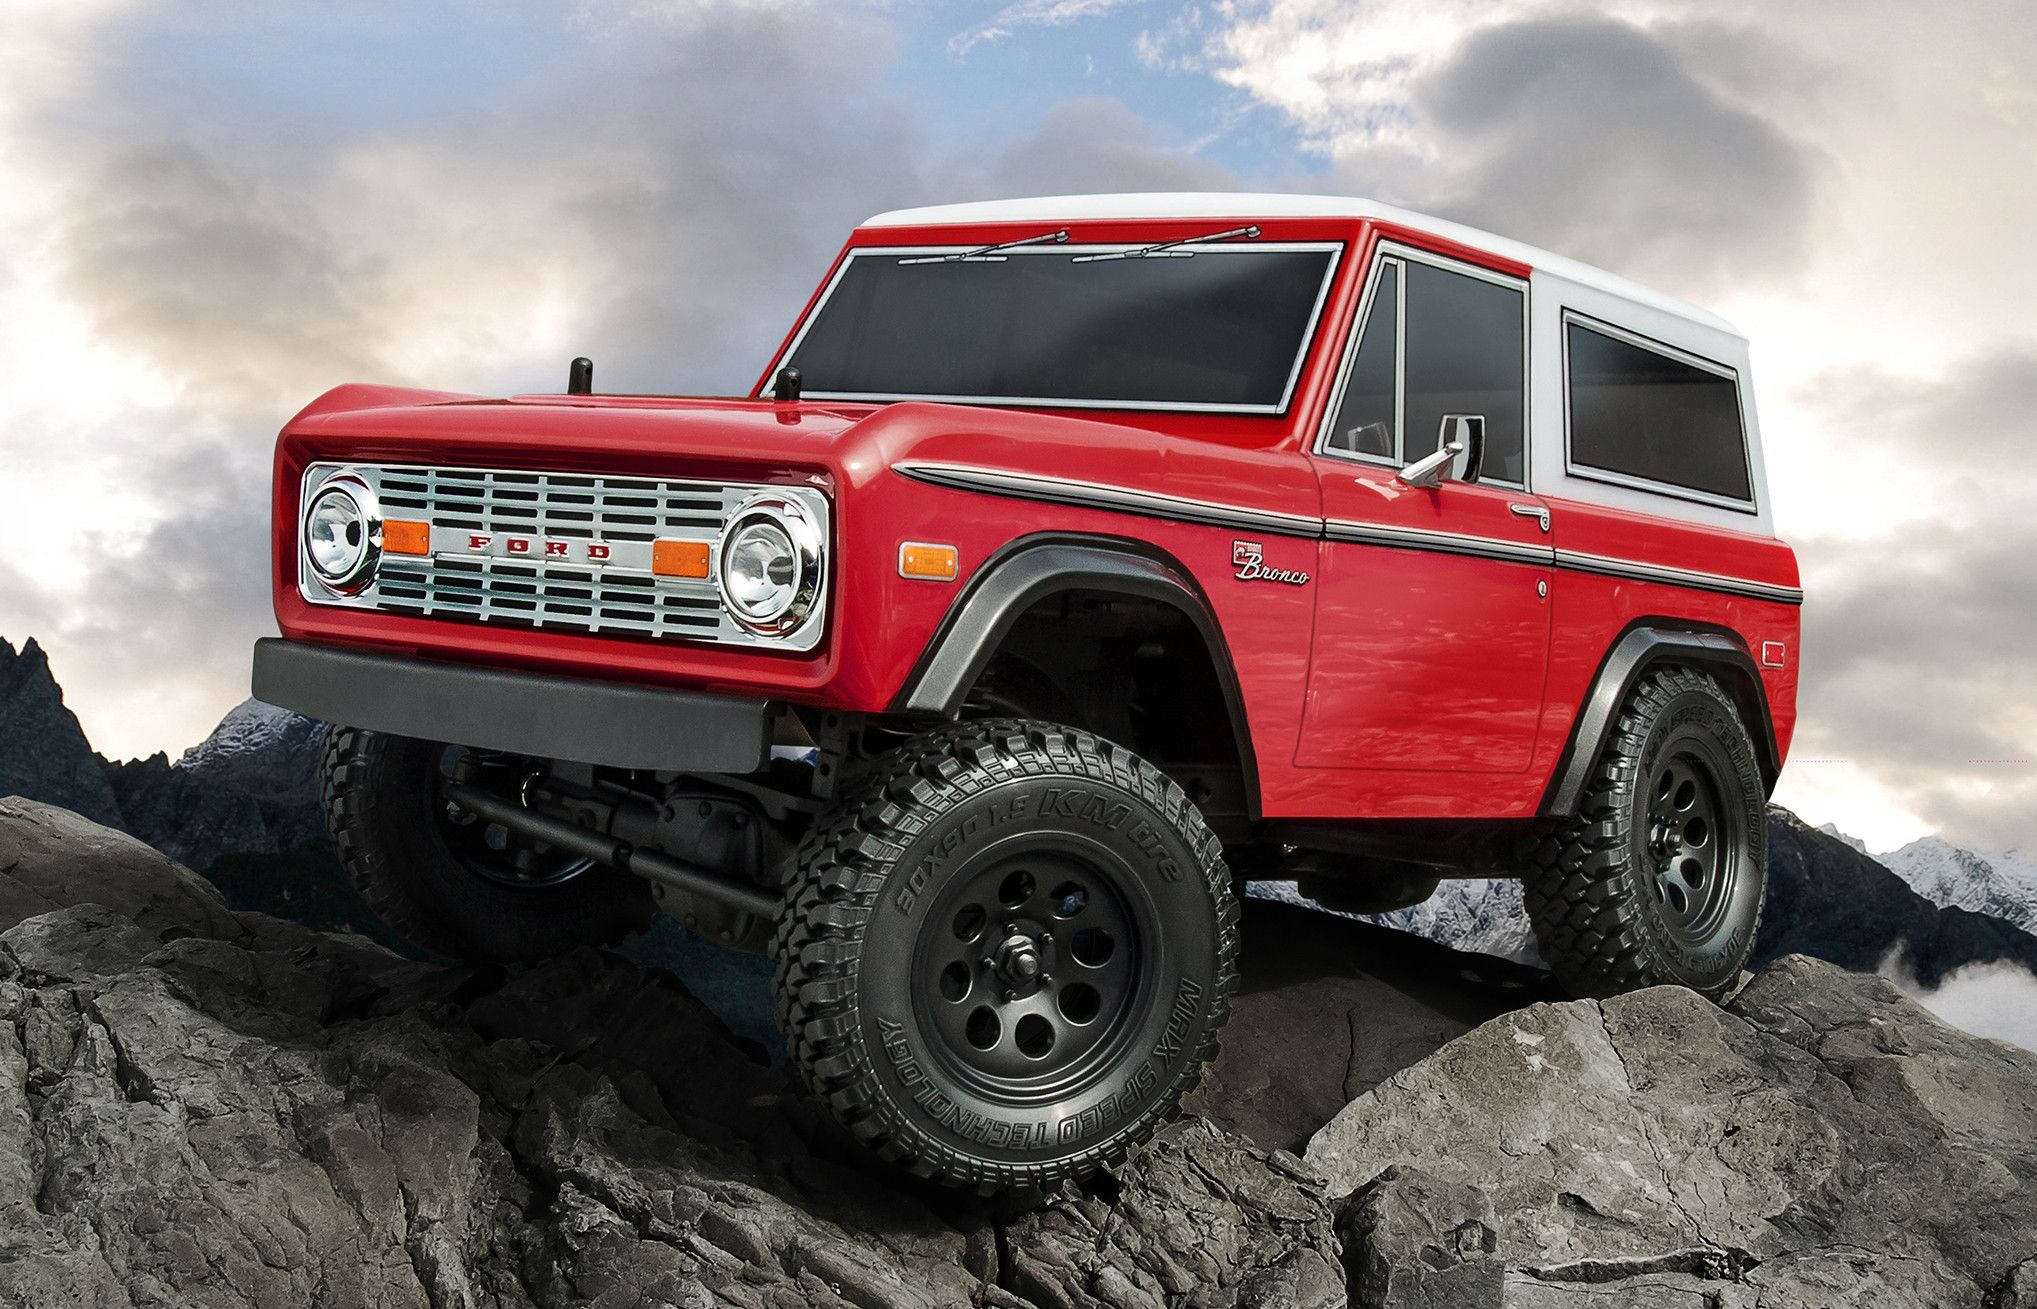 5 Things the New Ford Bronco Should Have Ford bronco